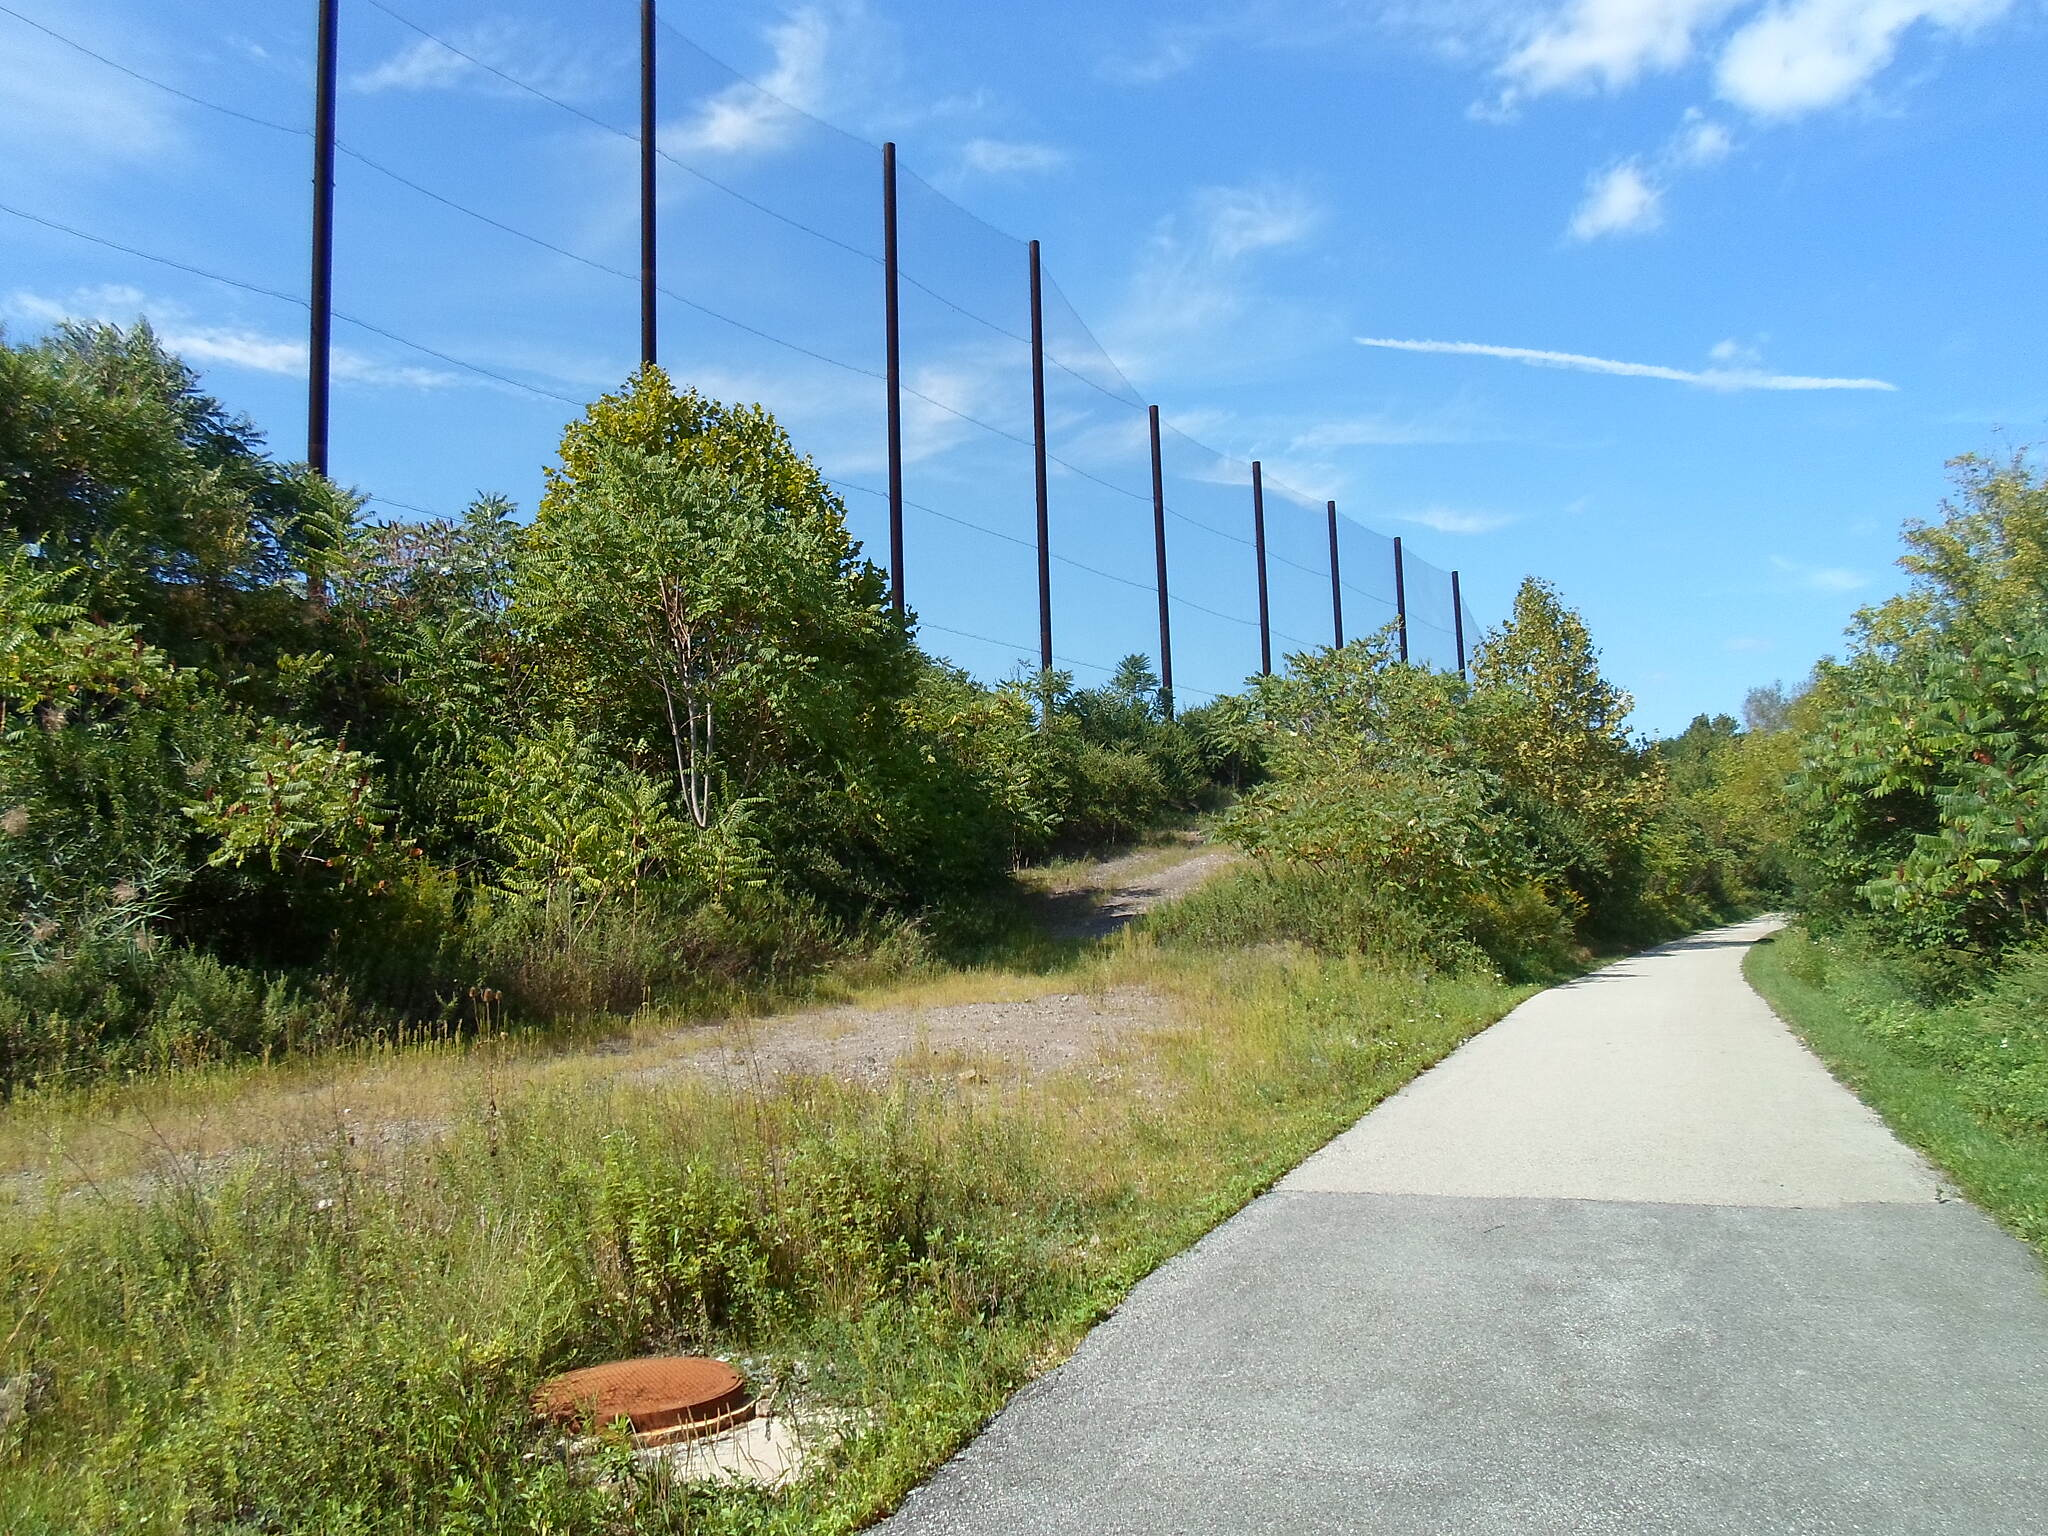 Cross County Trail (PA) Cross County Trail This high fencing northeast of Conshohocken protects the trail and its users from golf balls hit from a nearby driving range. Taken Sept. 2014.